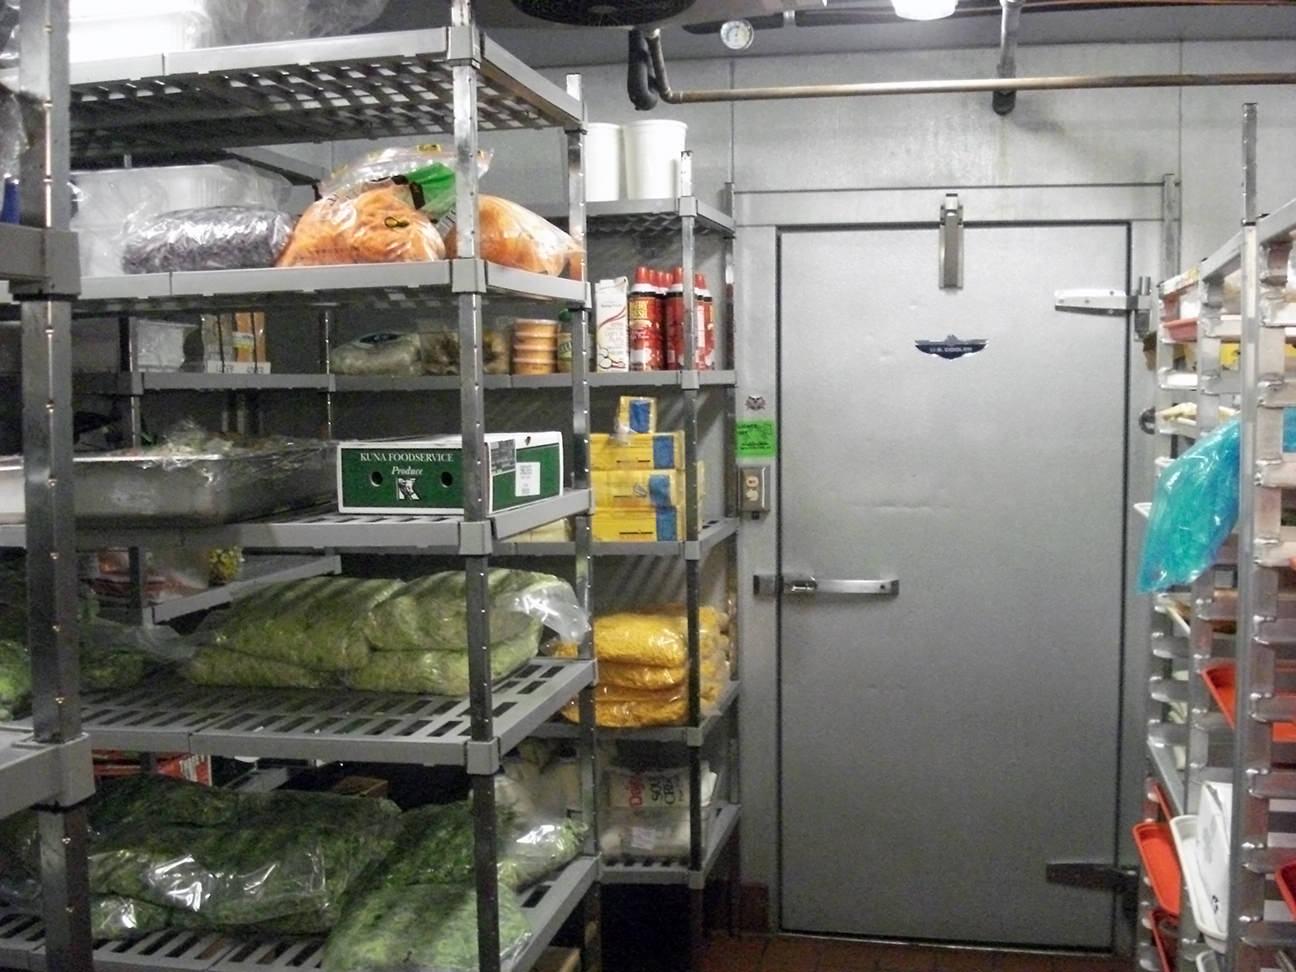 Tips for Organizing a Walk-In Freezer or Refrigerator - The Shelving Blog